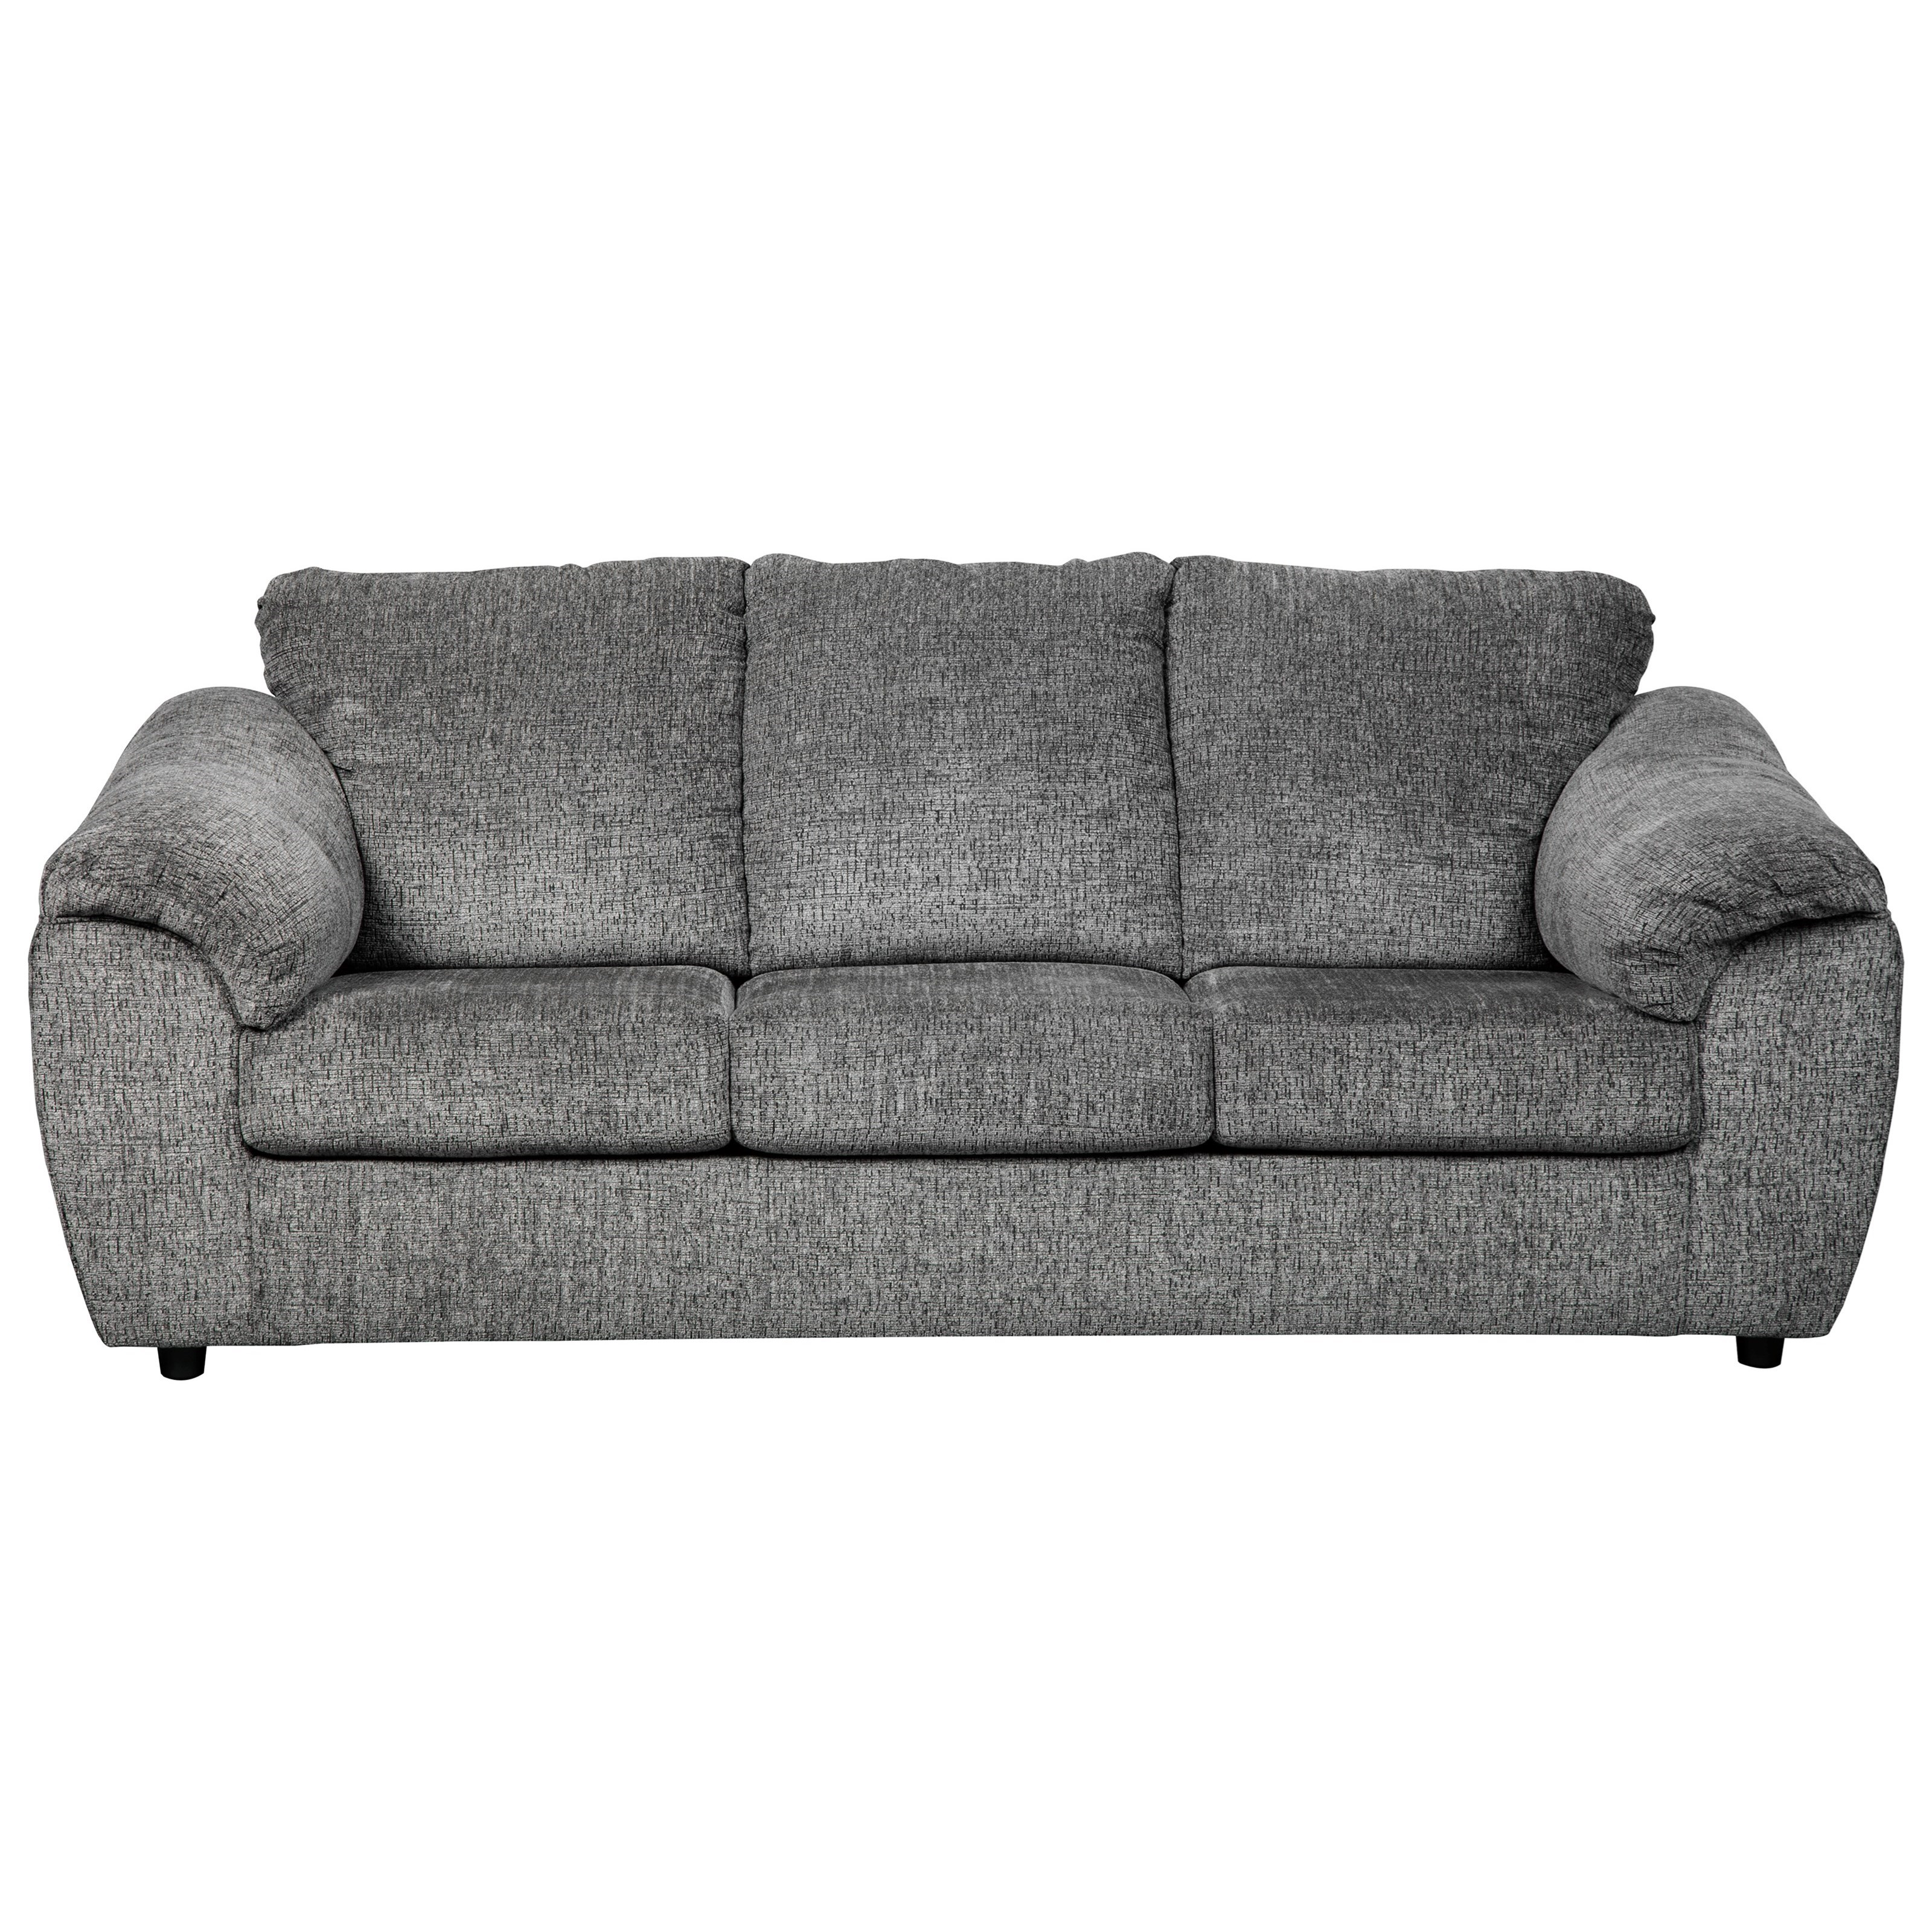 ashley furniture modern sofa how to dispose of a bed signature design azaline 9320238 casual